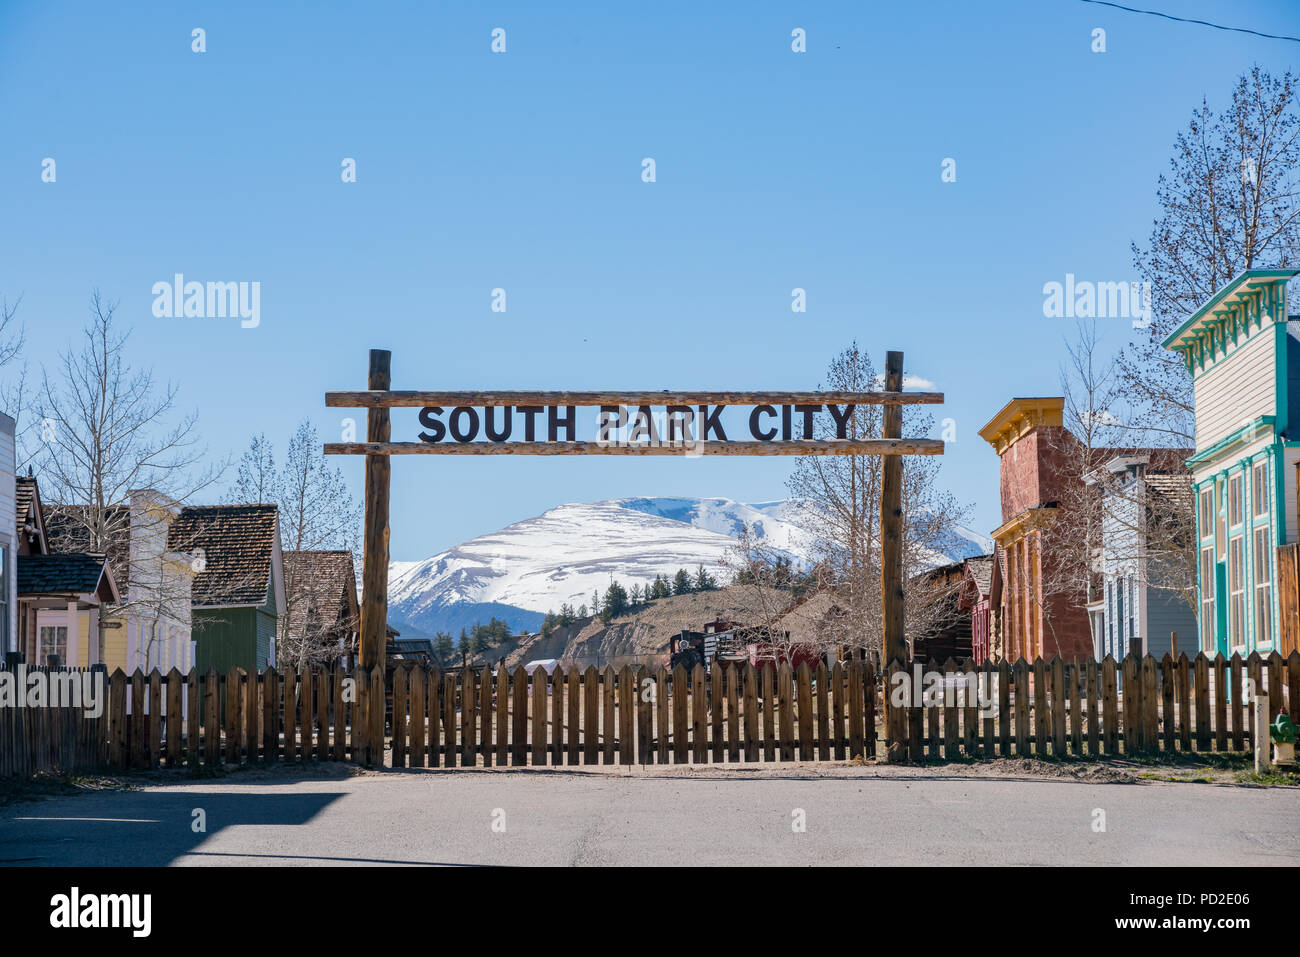 The historical South Park City at Fairplay, Colorado - Stock Image